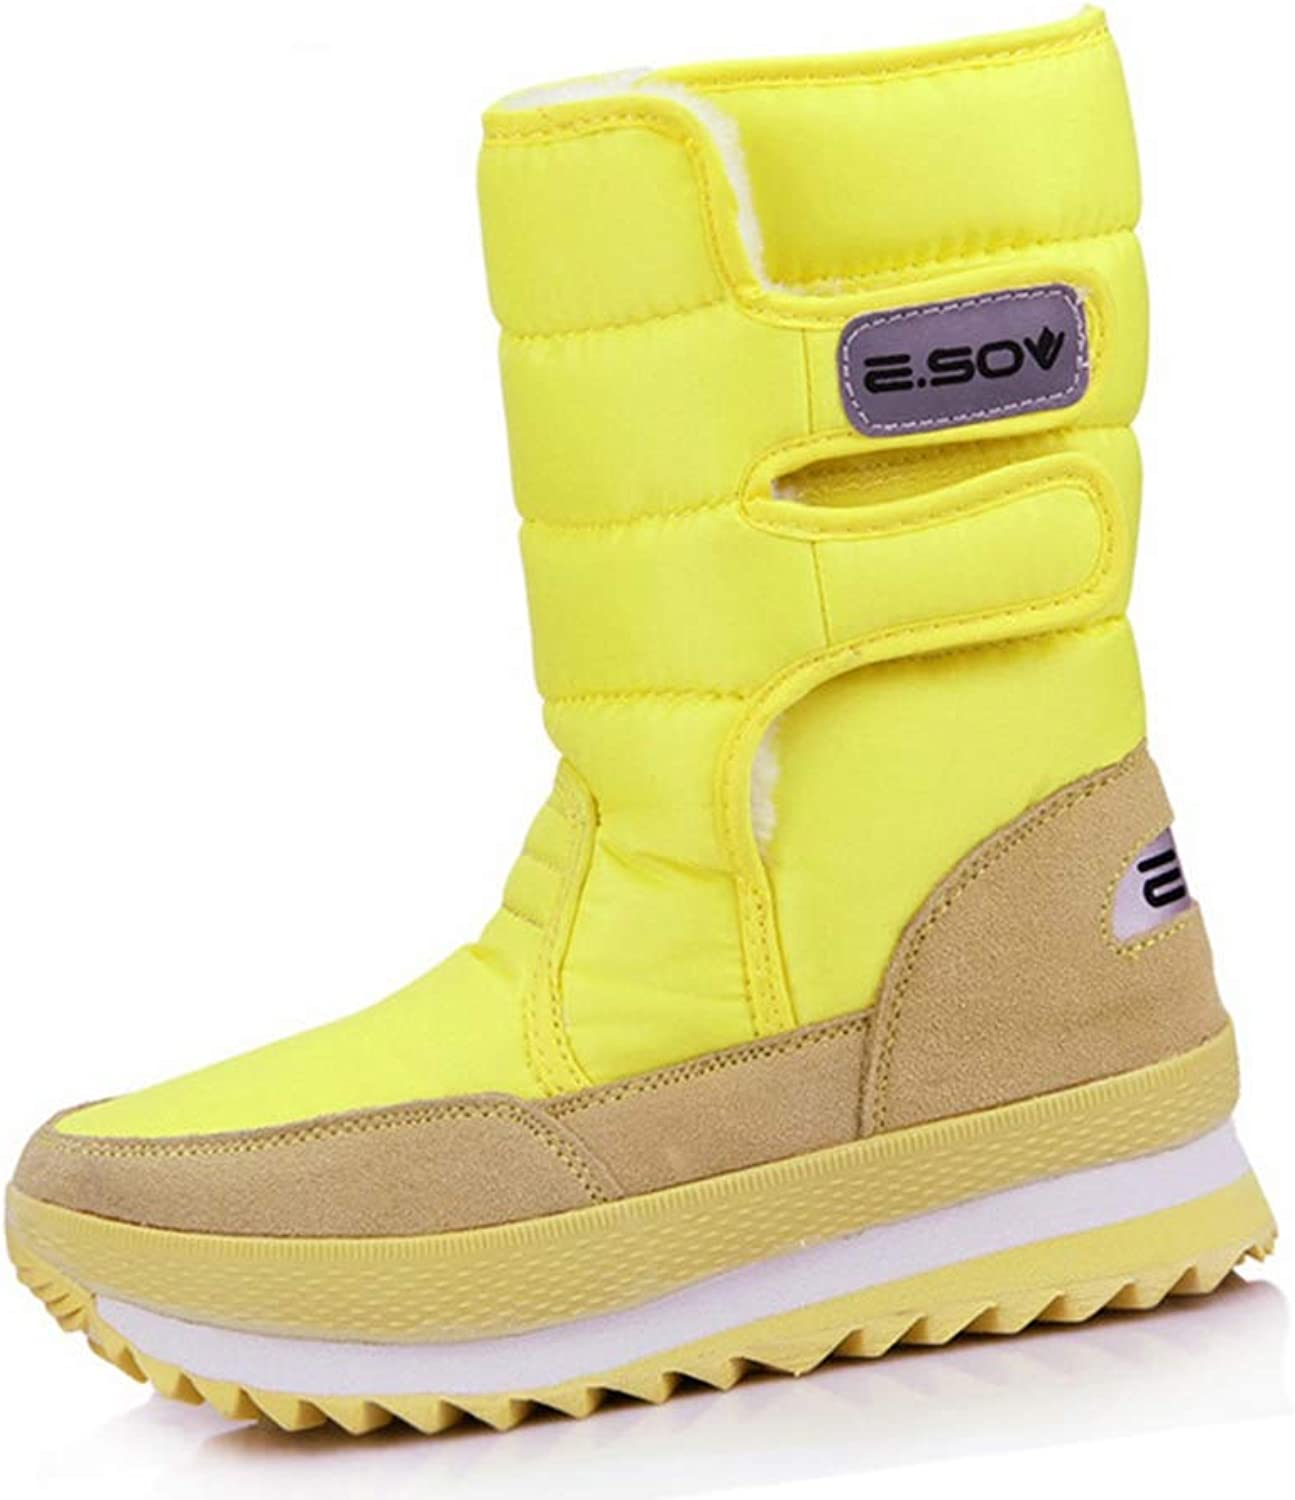 Hoxekle Fashion Warm Winter Snow Boots Women Snow Boots Round Toe Mid-Calf Boots Flats shoes White Black Yellow